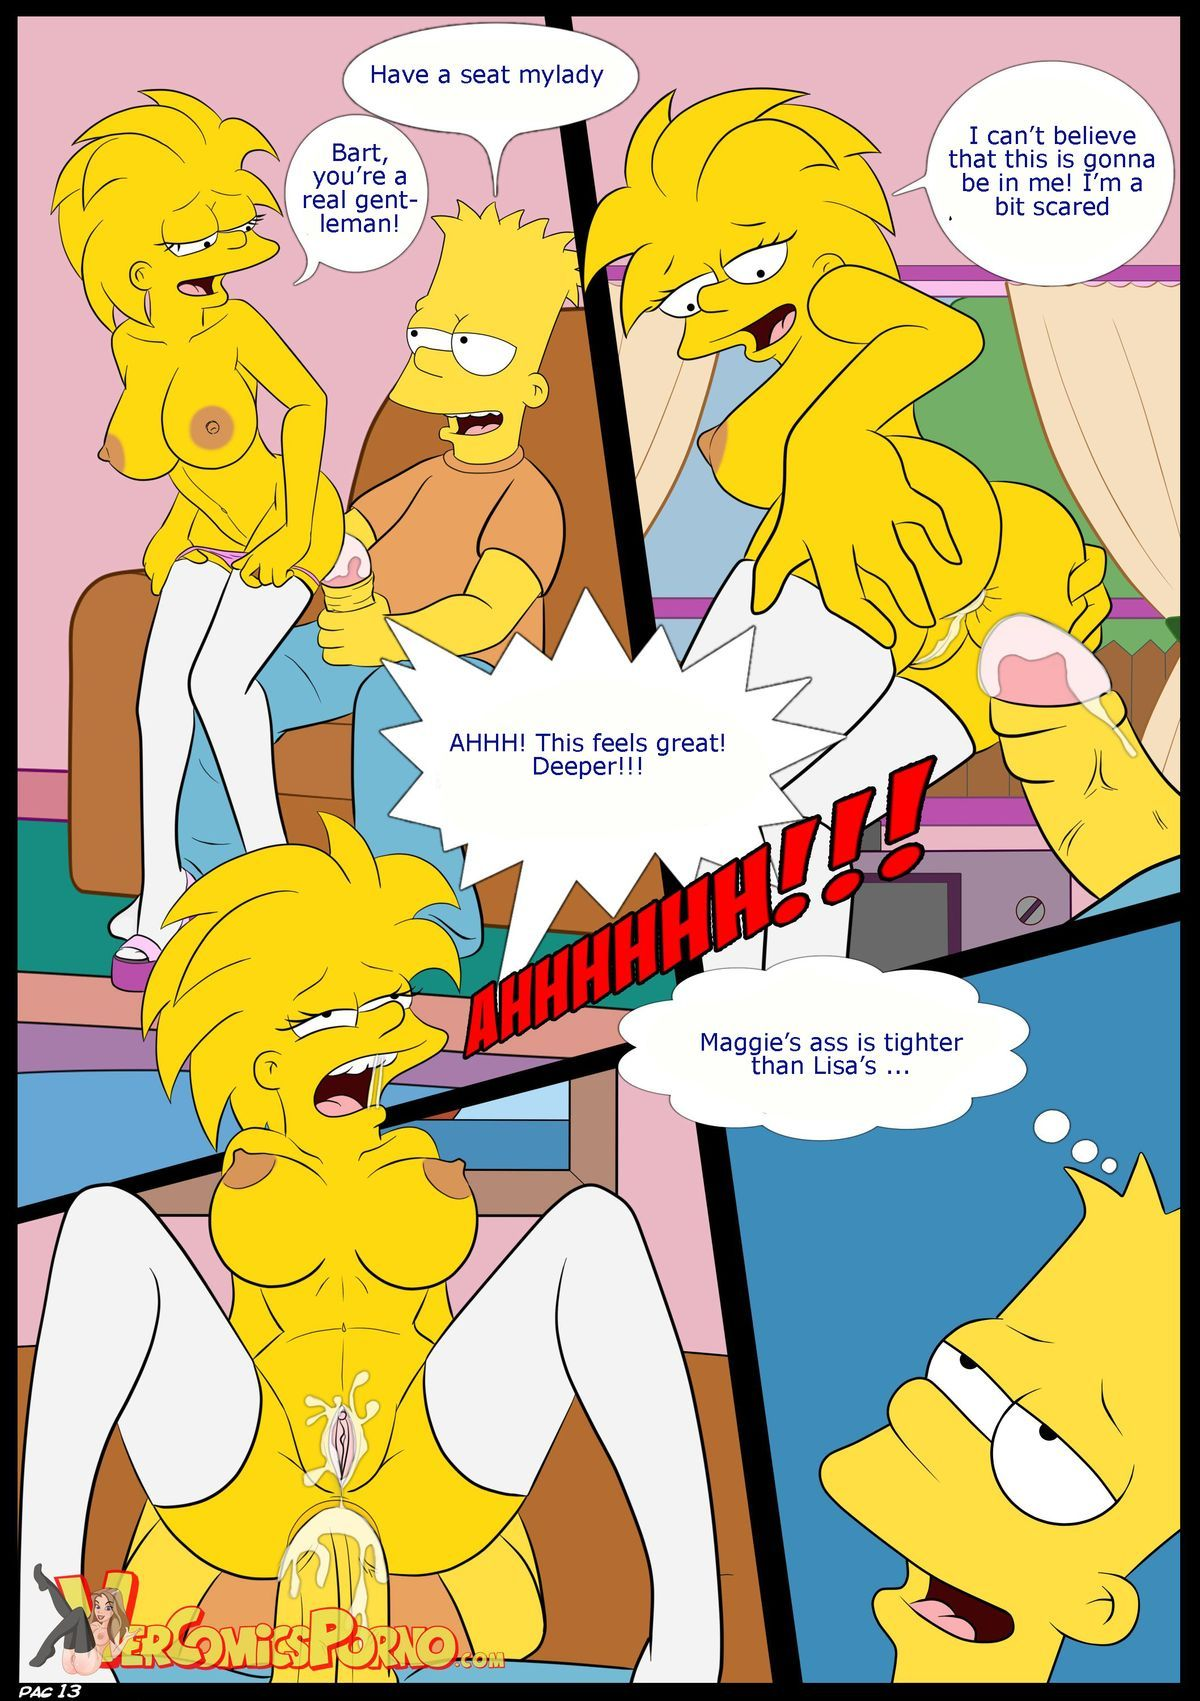 14 30 - The Simpsons. Part 2.